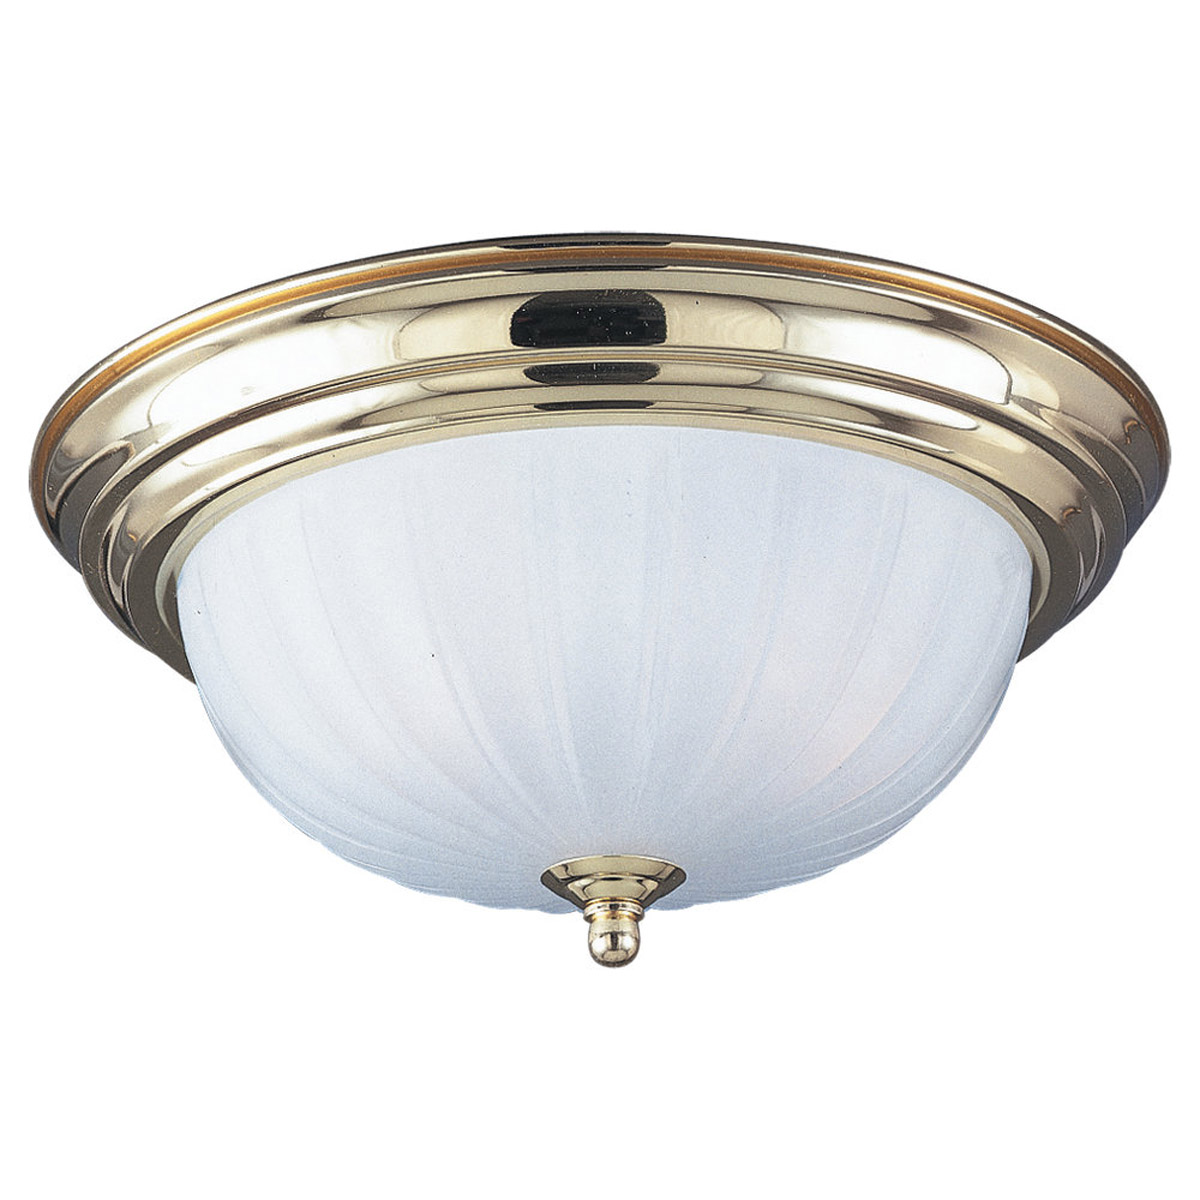 Sea Gull Lighting Linwood 1 Light Flush Mount in Polished Brass 7504-02 photo